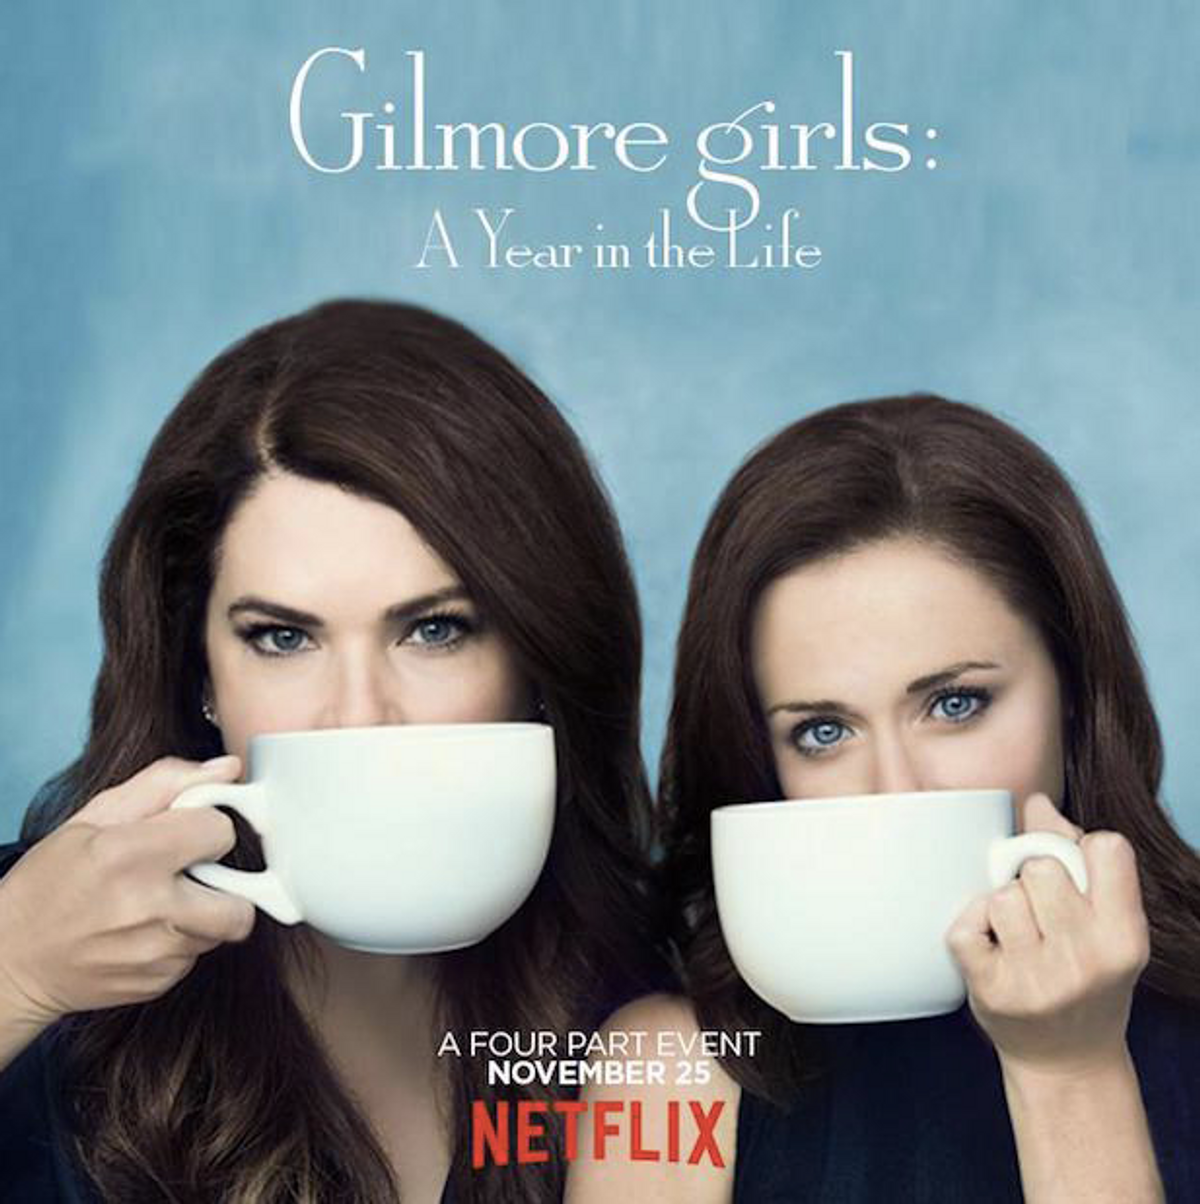 42 Thoughts While Watching Gilmore Girls: A Year in the Life